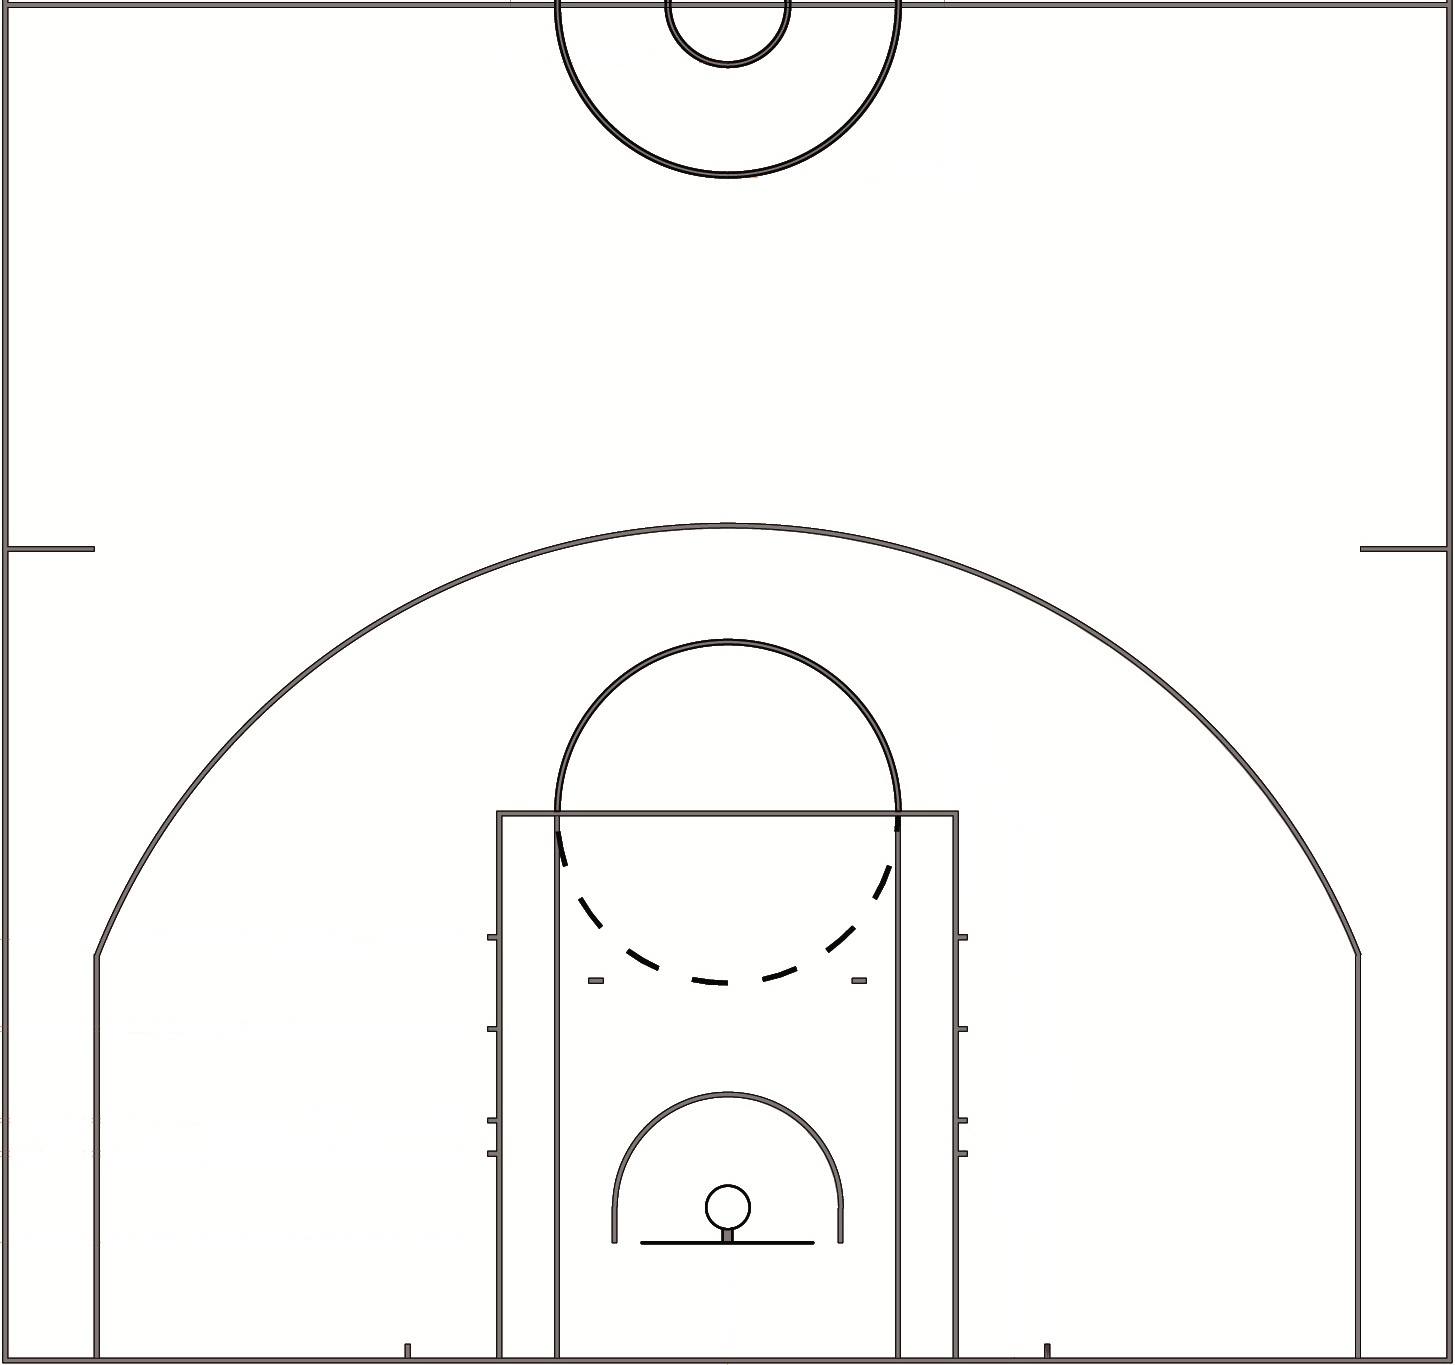 How to create nba shot charts in r the data game for What are the dimensions of a half court basketball court